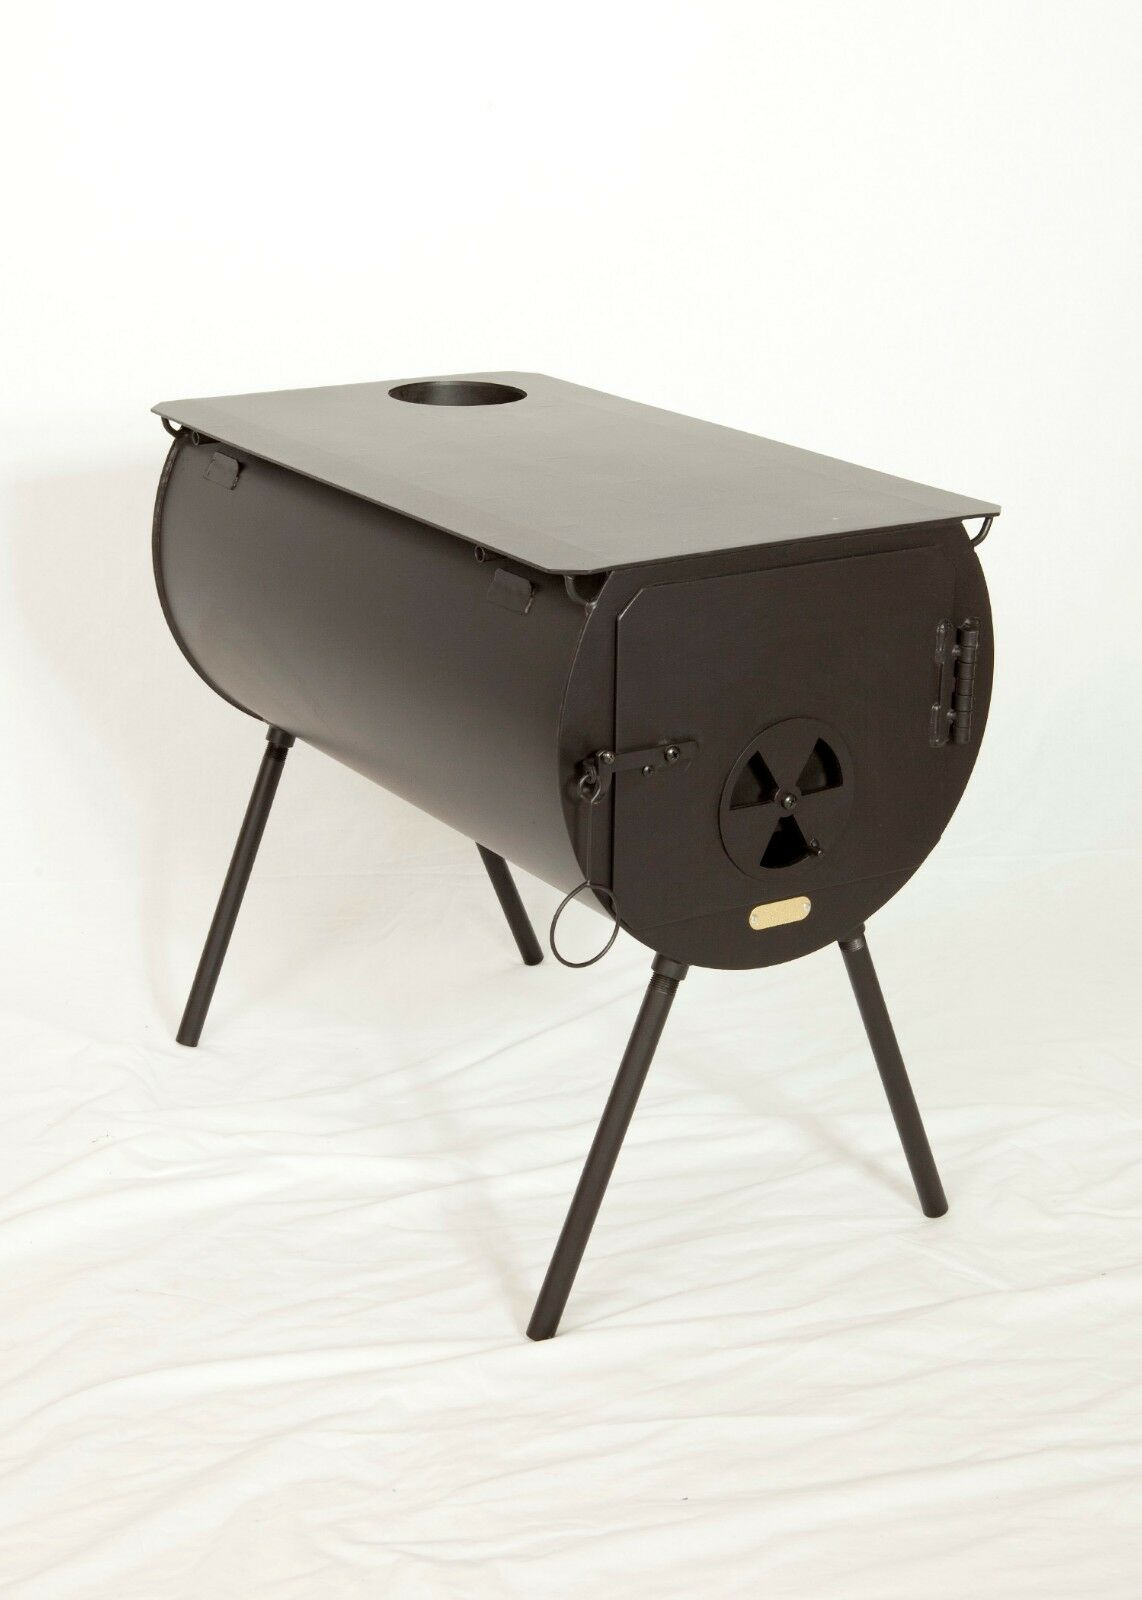 NEW  Outfitter Cylinder Wood Stove - Wall Tent - Camping Stove. Made in the USA